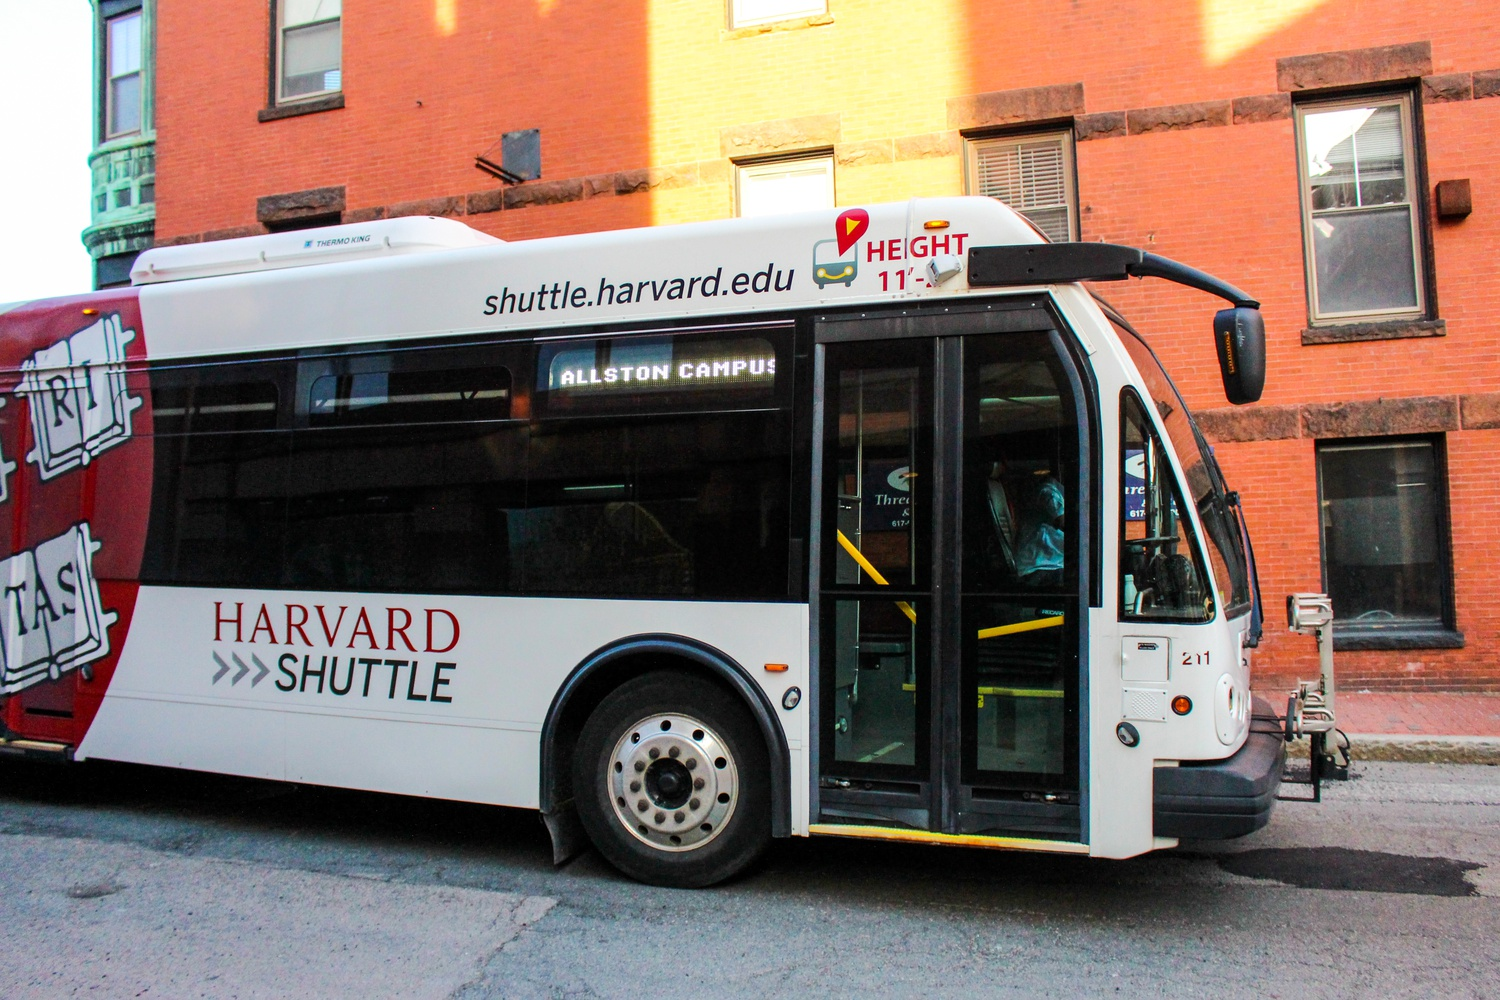 The Allston Campus Express shuttle provides transportation from the Allston campus to Harvard Yard at approximately 15 minute intervals.